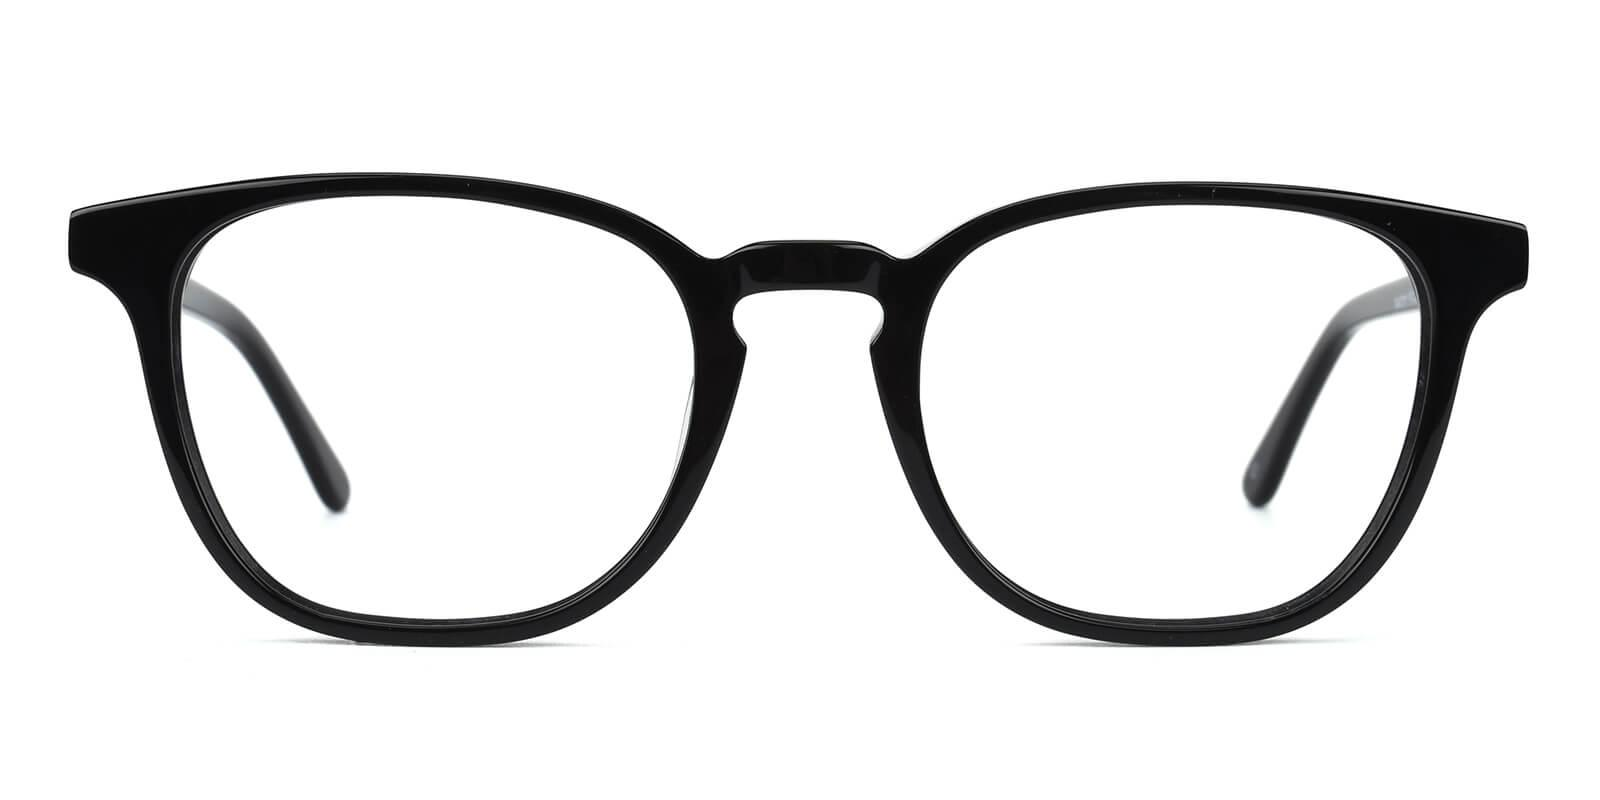 Genius-Black-Square-Acetate-Eyeglasses-additional2